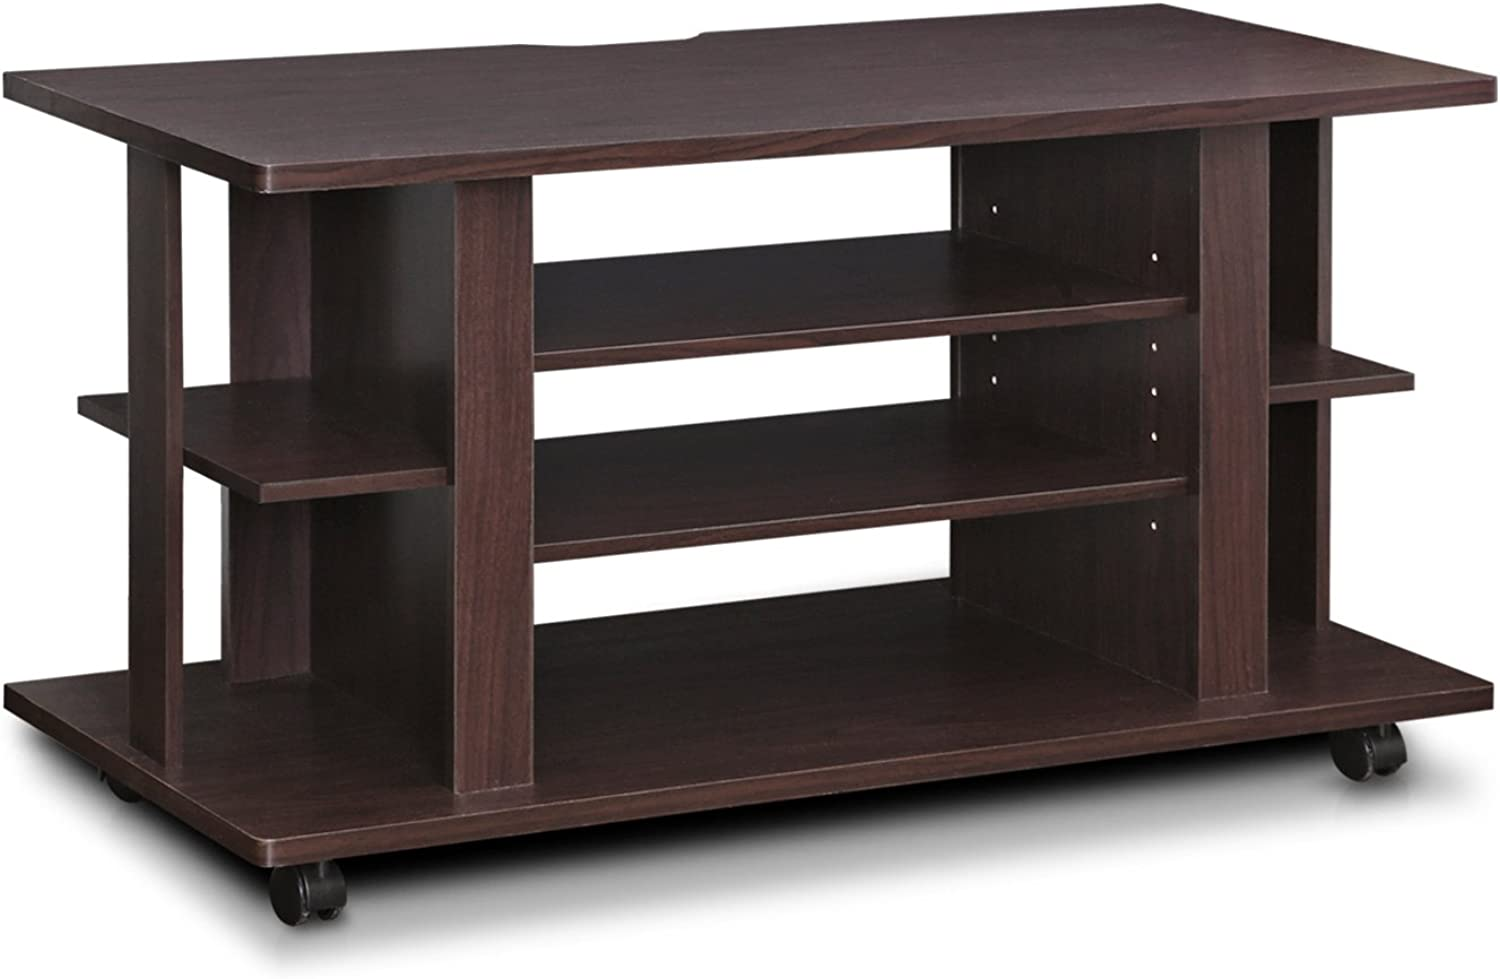 Furinno Indo FL-1000EX 4-Tier Low Rise Tatami TV Stands with Casters, Espresso